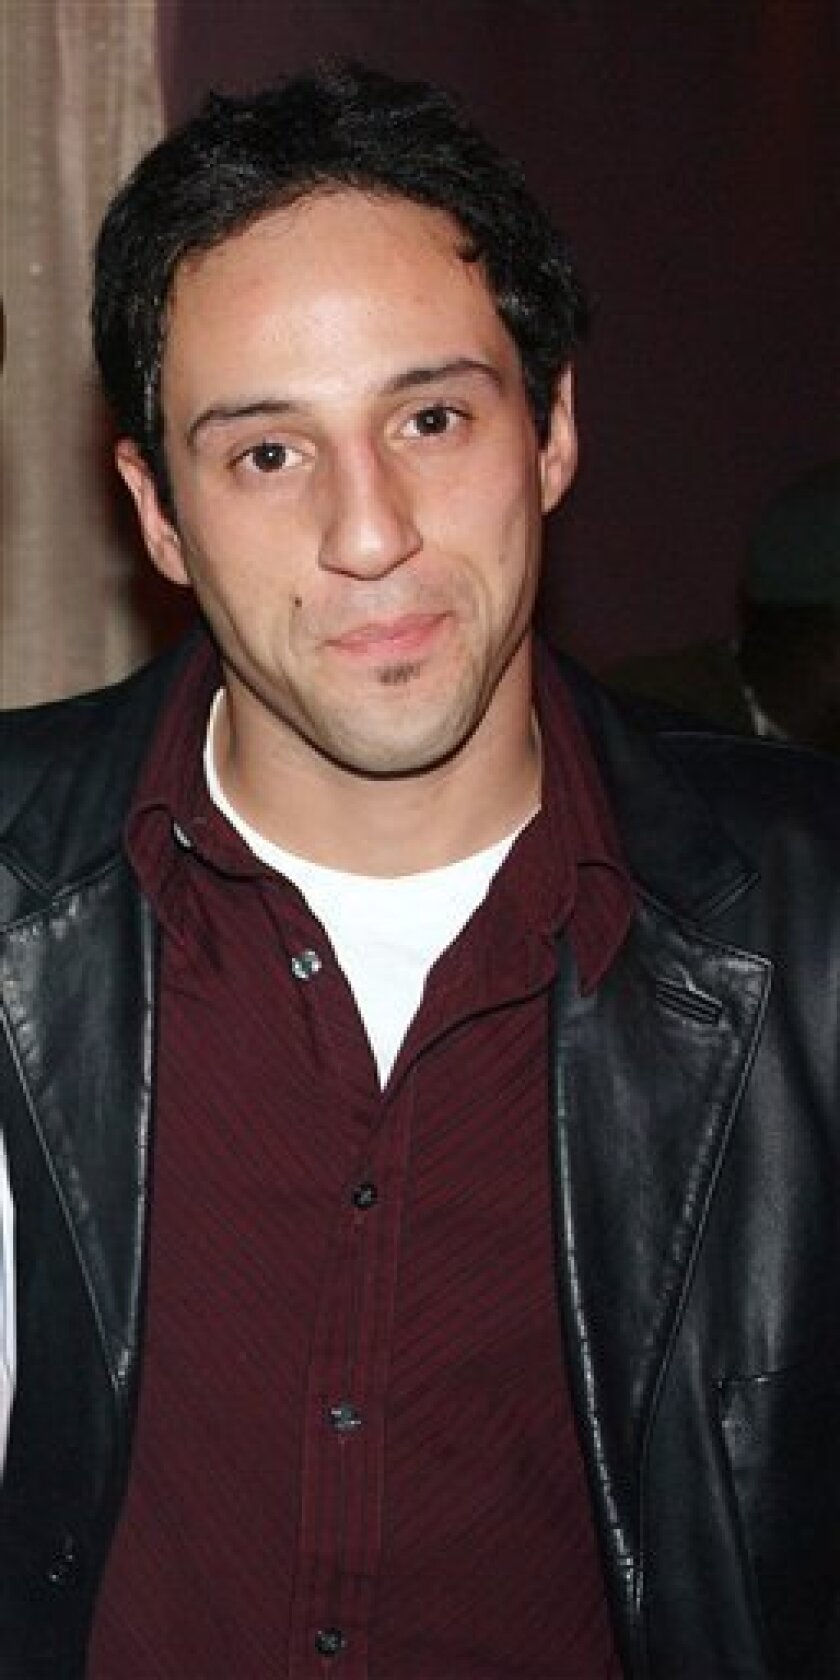 Actor Lillo Brancato, Jr. is shown in this Feb. 2005, file photo in New York. Brancato is charged with second-degree murder in the 2005 shooting death of Officer Daniel Enchautegui. A mistrial was avoided in his trial after it was discovered a juror had been taking notes during testimony and doing research on the case at home. Brancato agreed to a substitution with an alternate juror Thursday, Dec. 18, 2008, after the original juror was dismissed. His consent was required because the jury had already started deliberating. (AP Photo/David Greene, file)